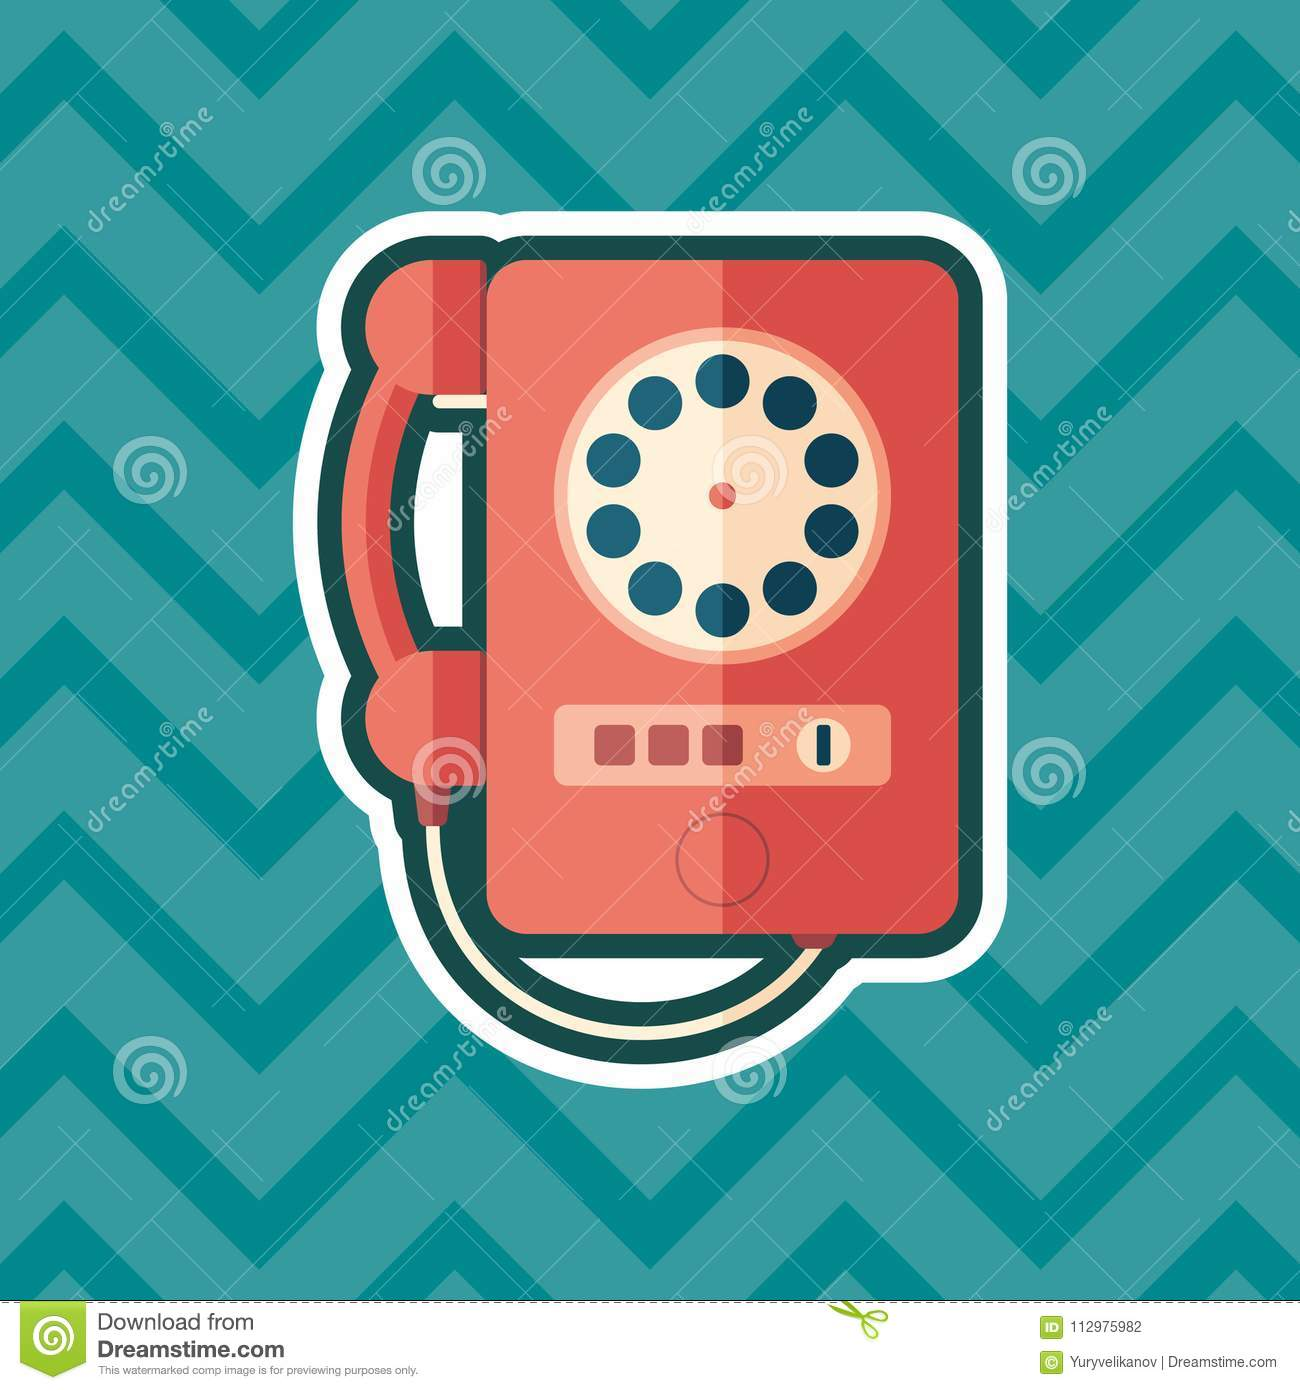 Vintage red telephone sticker flat icon with color background.